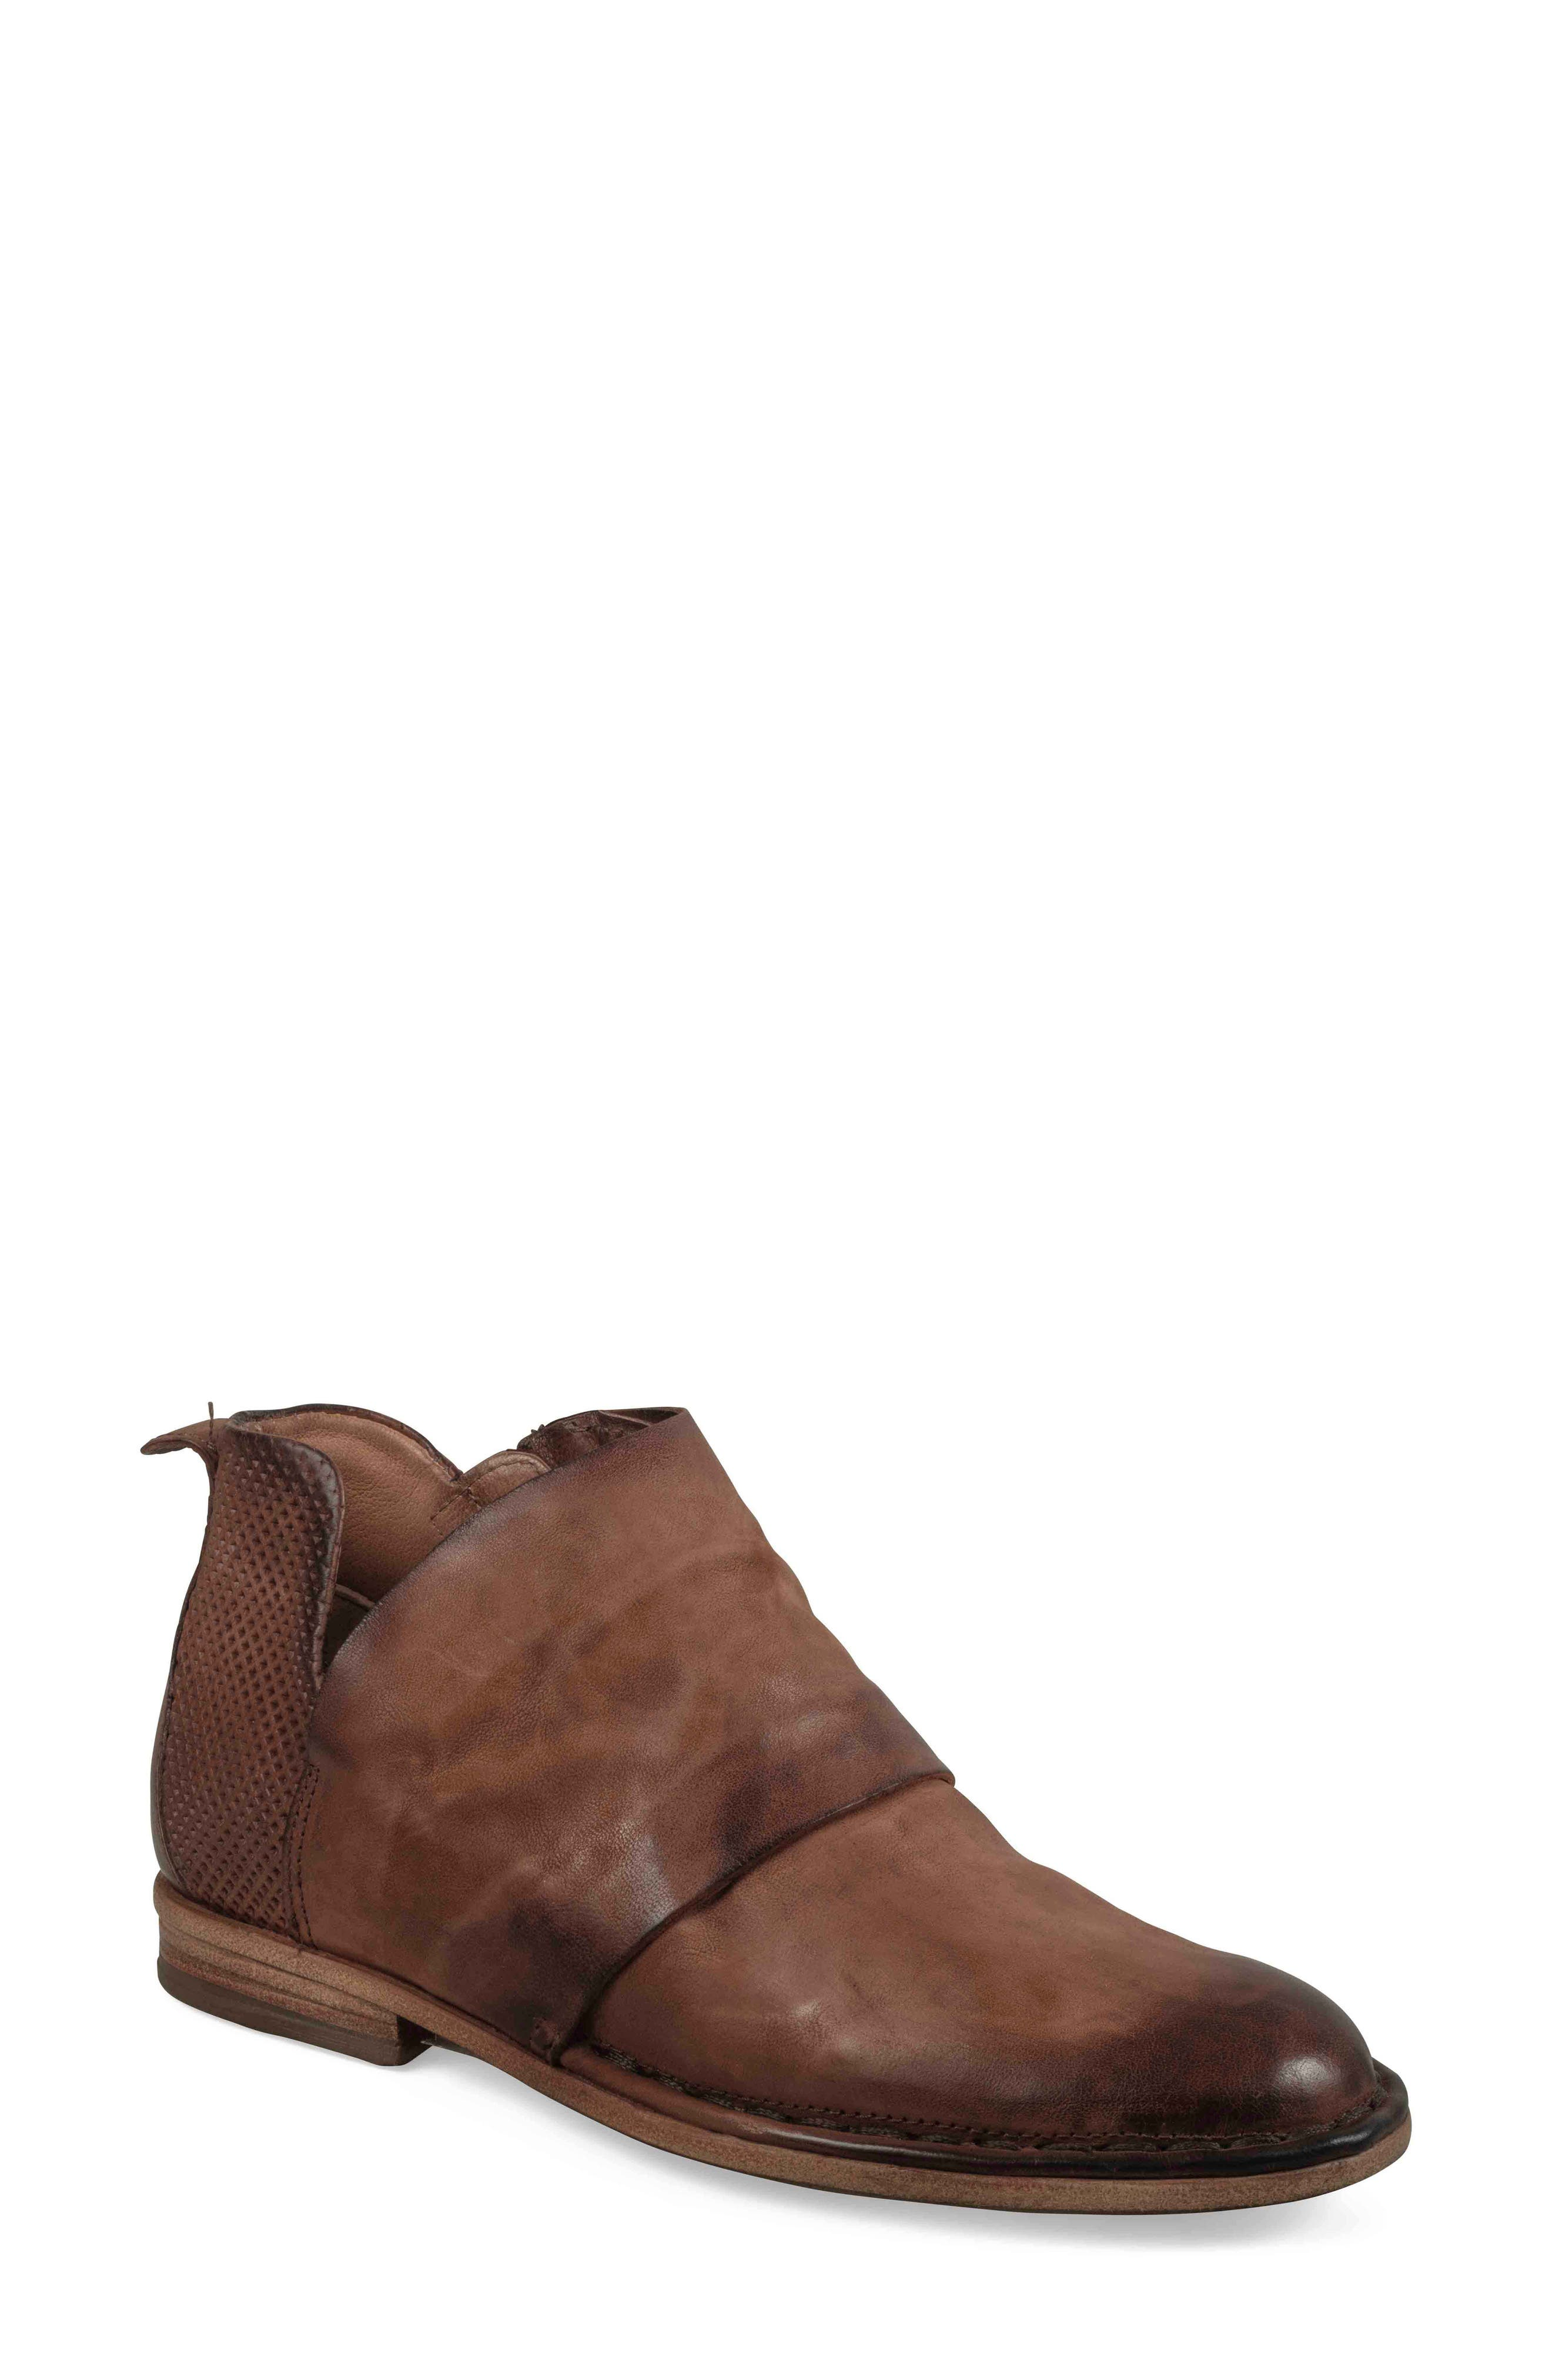 A.s.98 Biel Ankle Boot - Brown